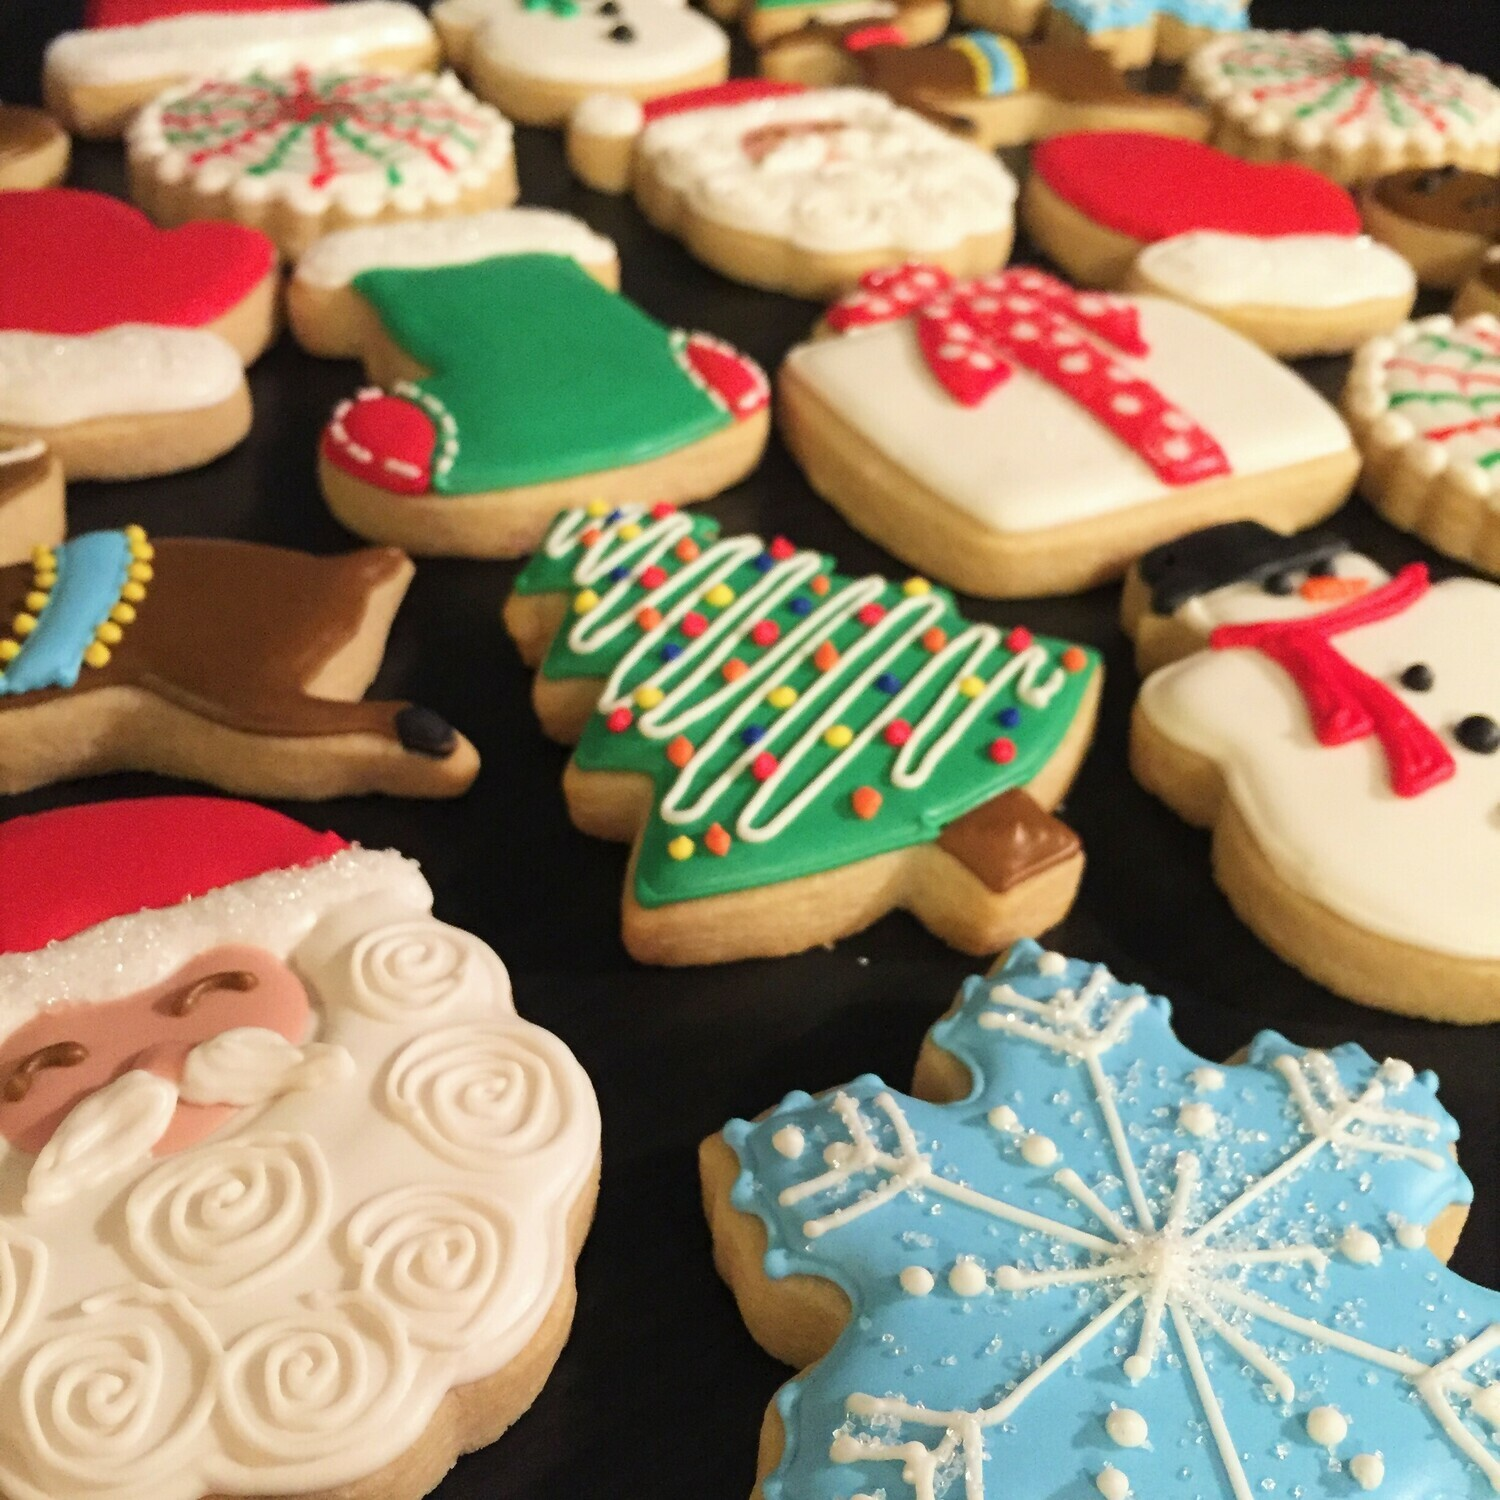 'Christmas Time' Decorating Workshop - TUESDAY, DECEMBER 17th at 6:30 p.m. (KIEPERSOL'S SALT KITCHEN)